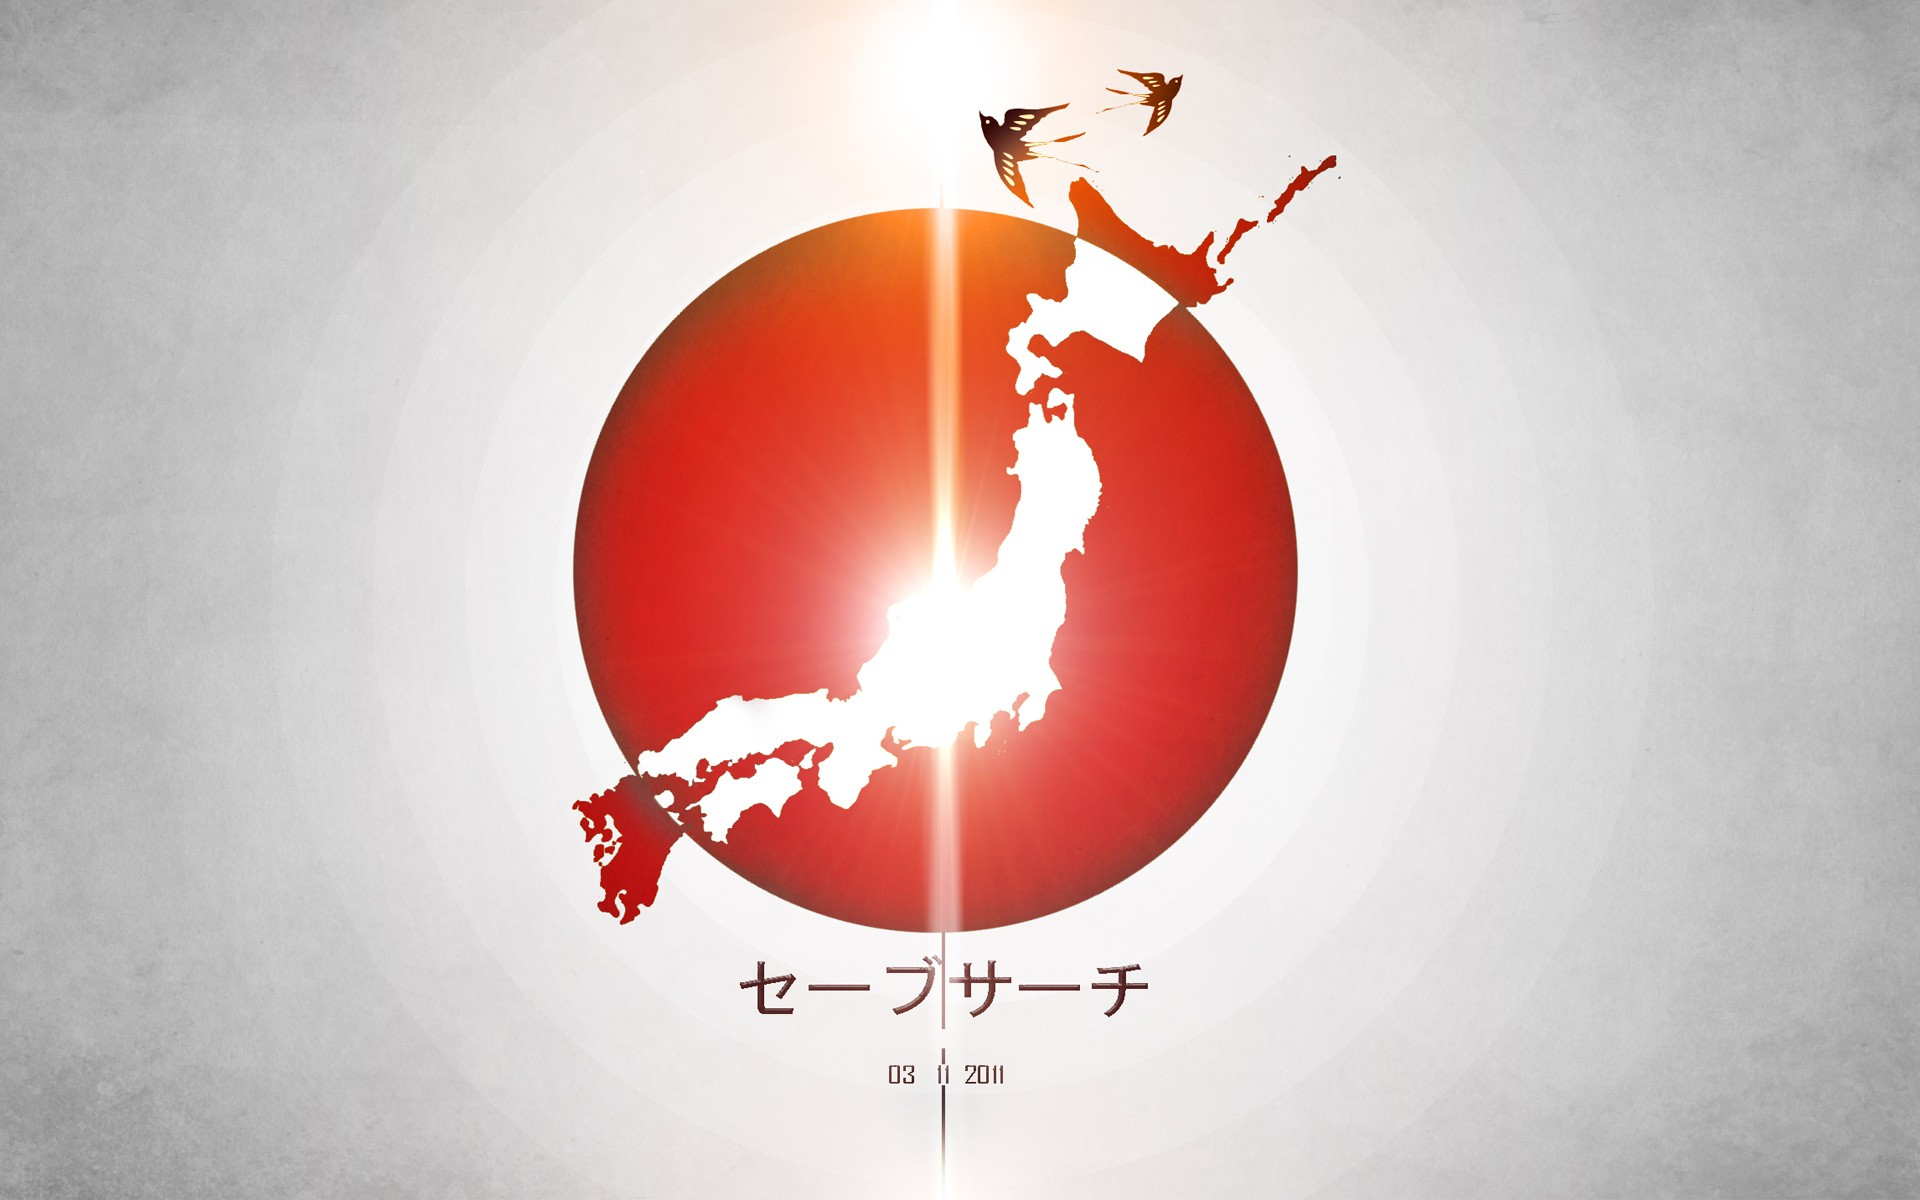 For Japan Wide